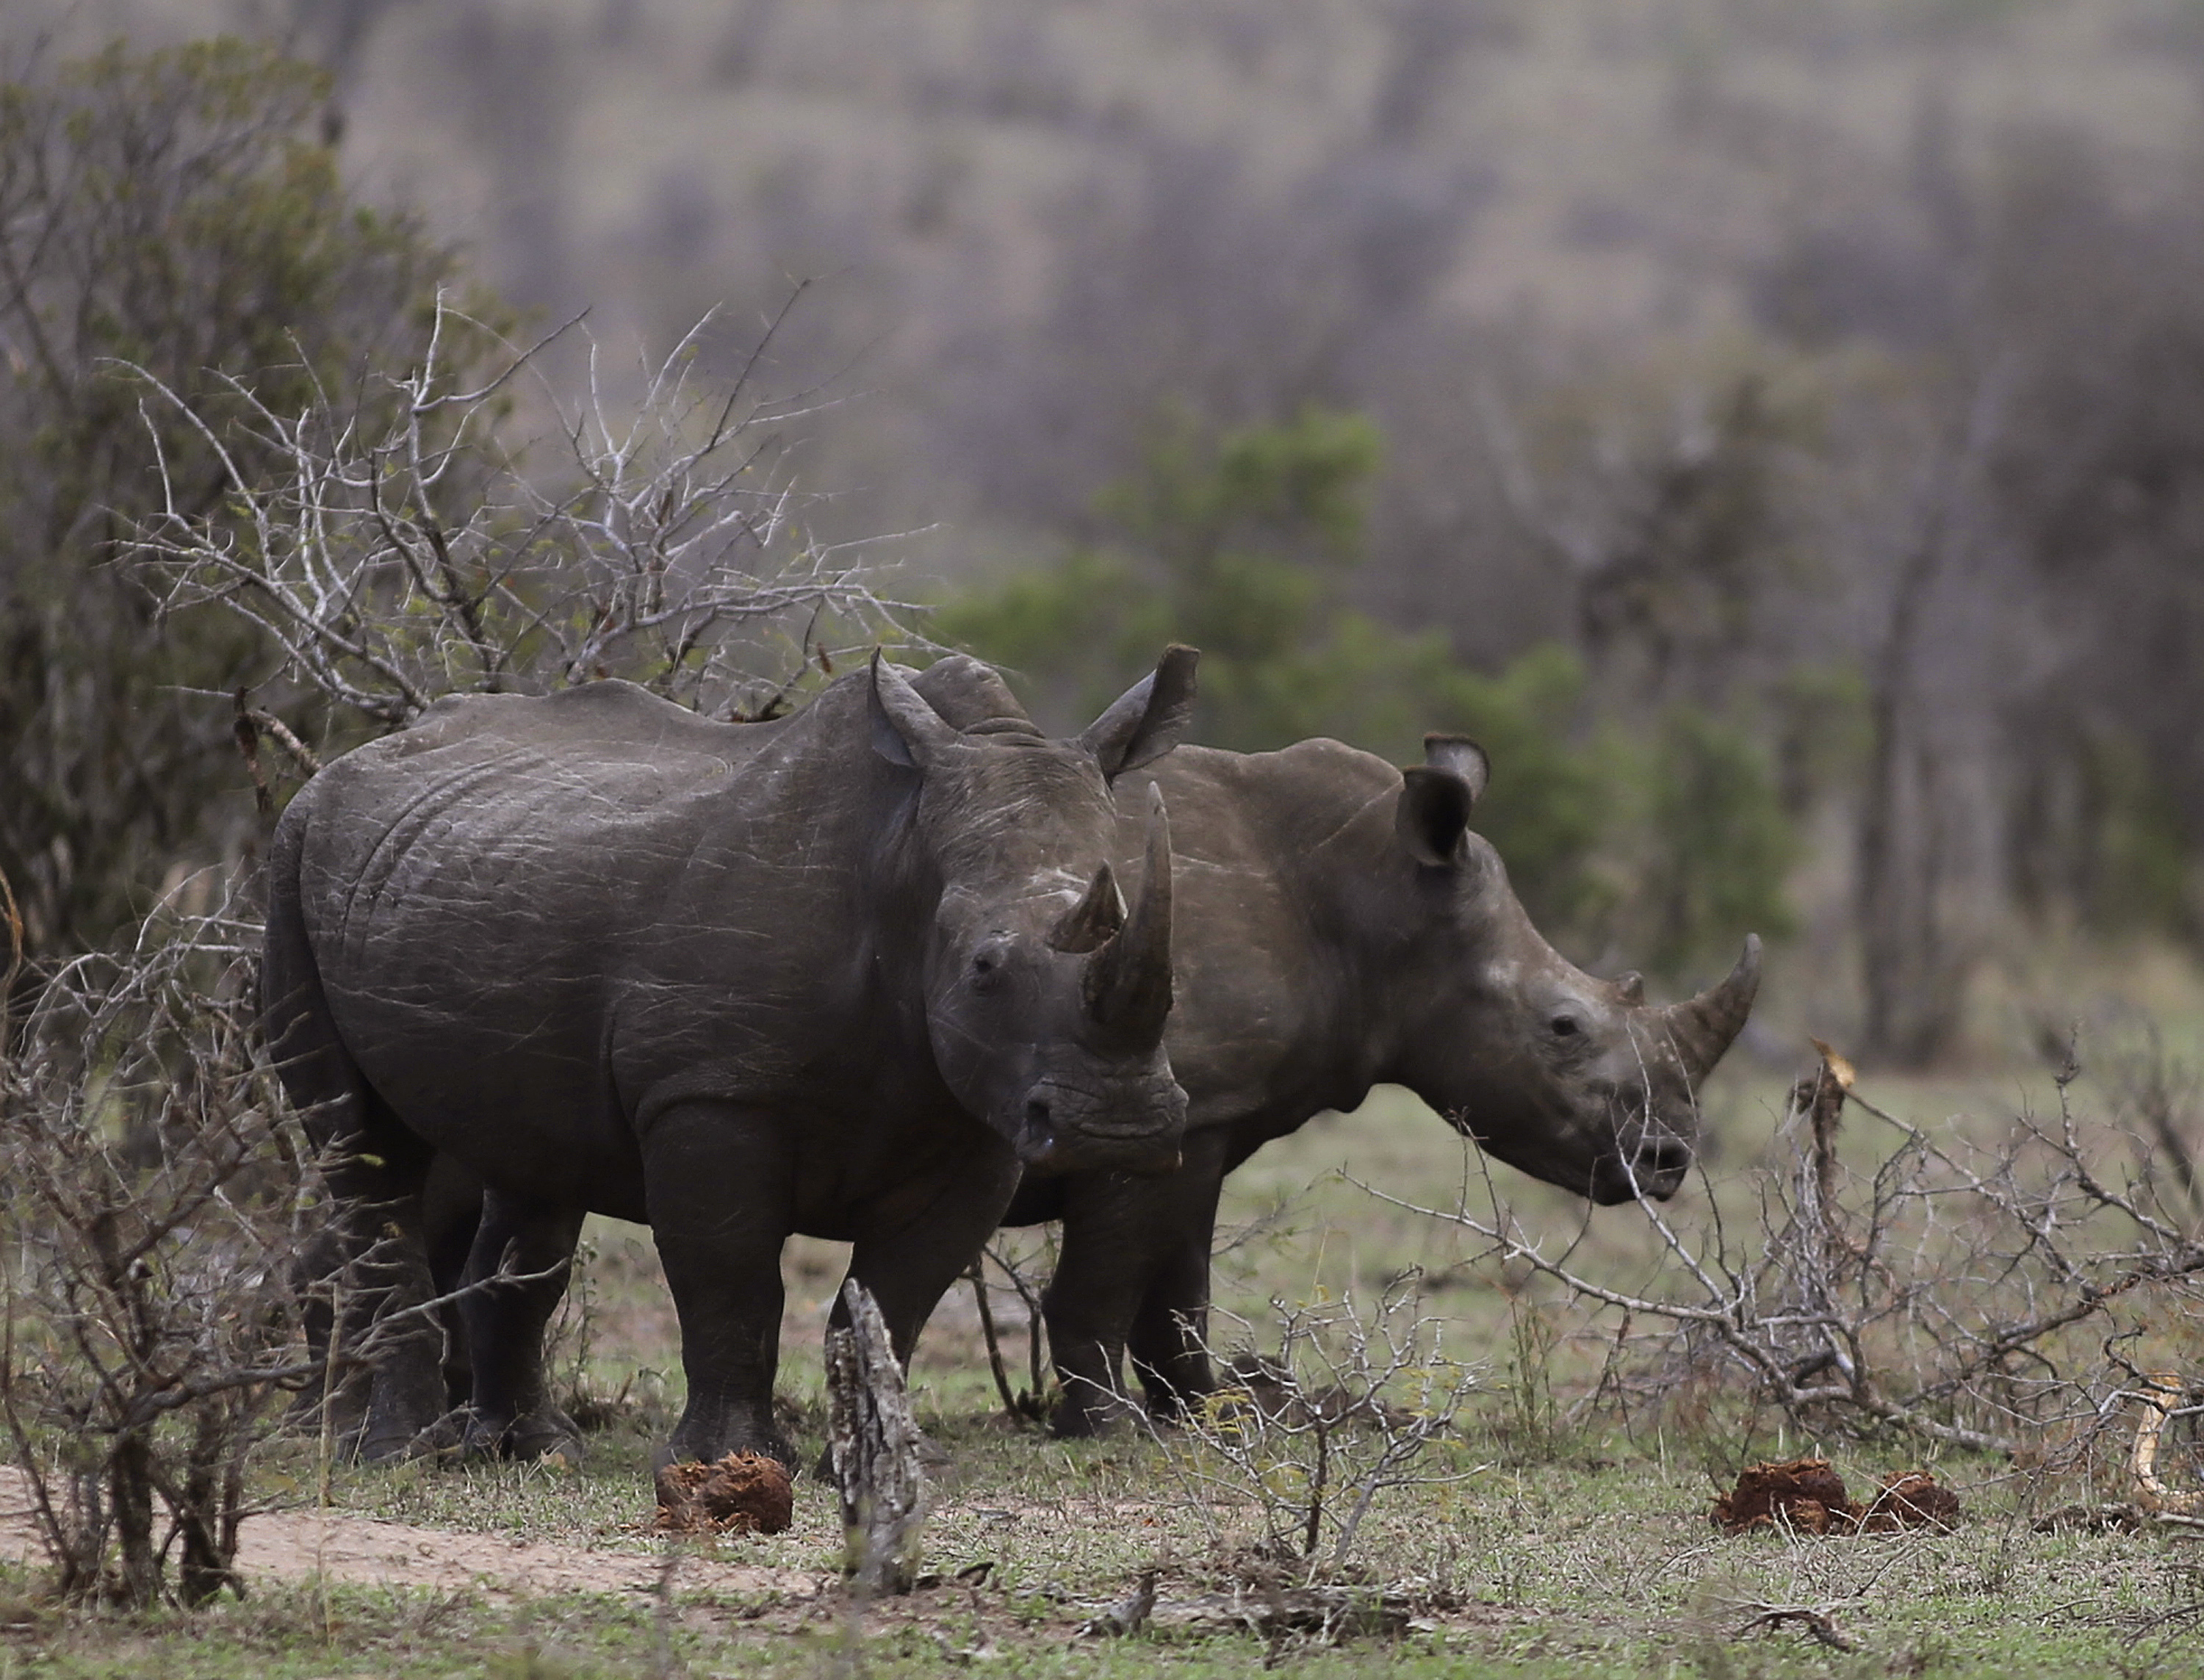 Rhinos graze in the bush on the edge of Kruger National Park in South Africa on Oct. 1, 2016